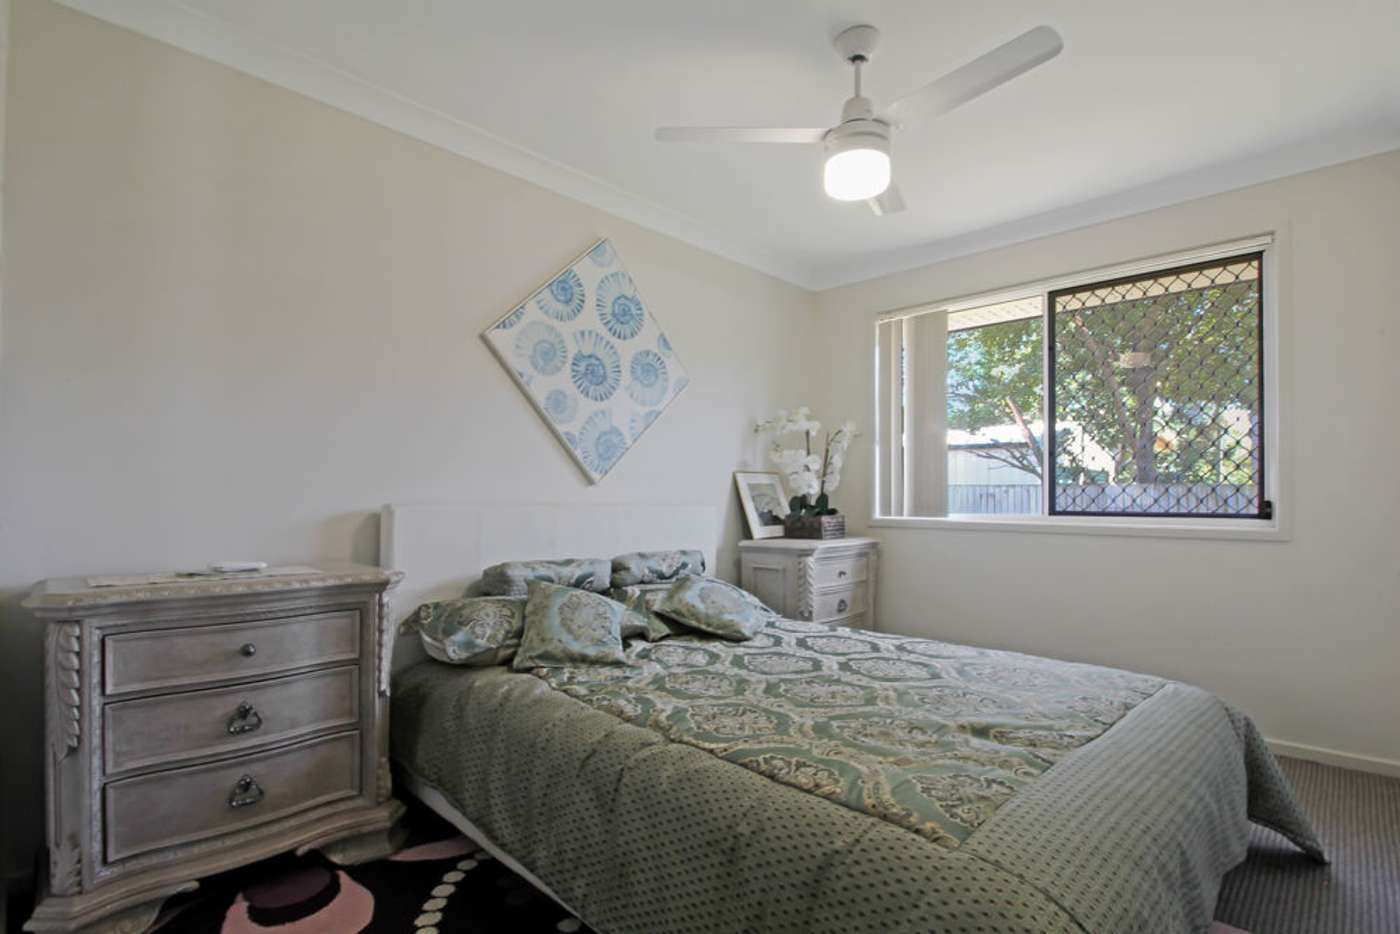 Sixth view of Homely house listing, 2/17 Lynelle Street, Marsden QLD 4132